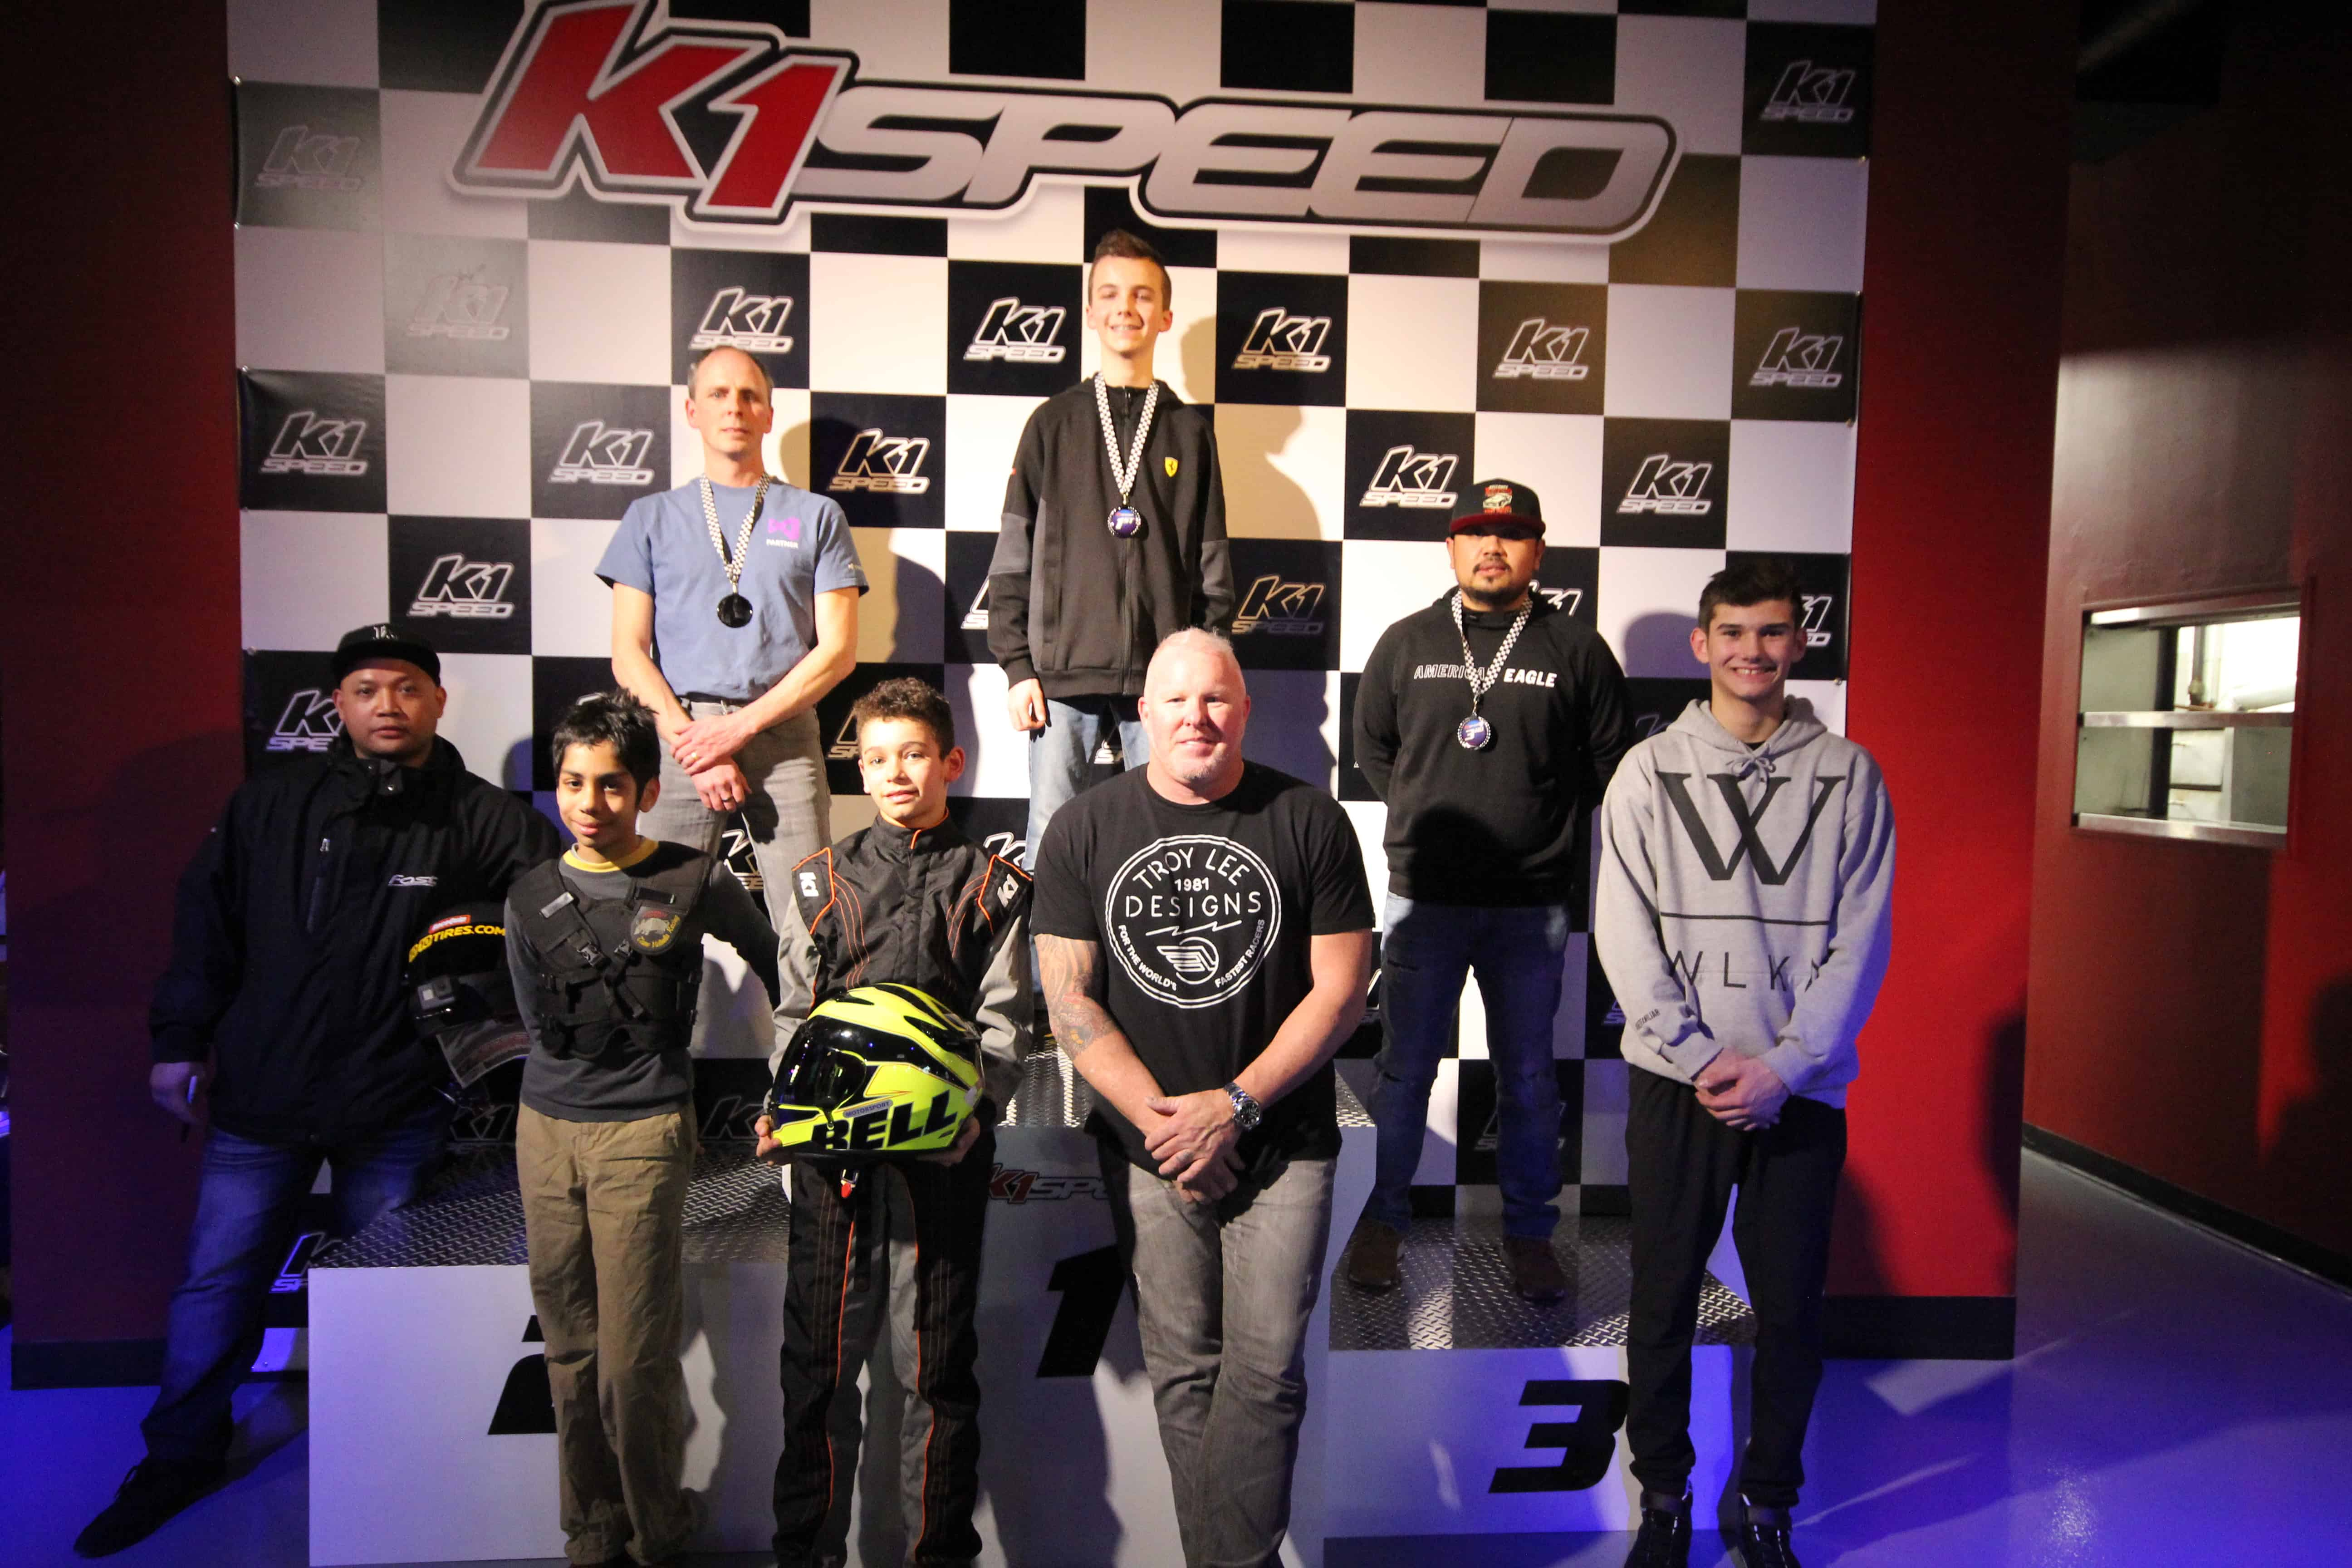 Paul Tracy at the podium with guests at K1 Speed Toronto